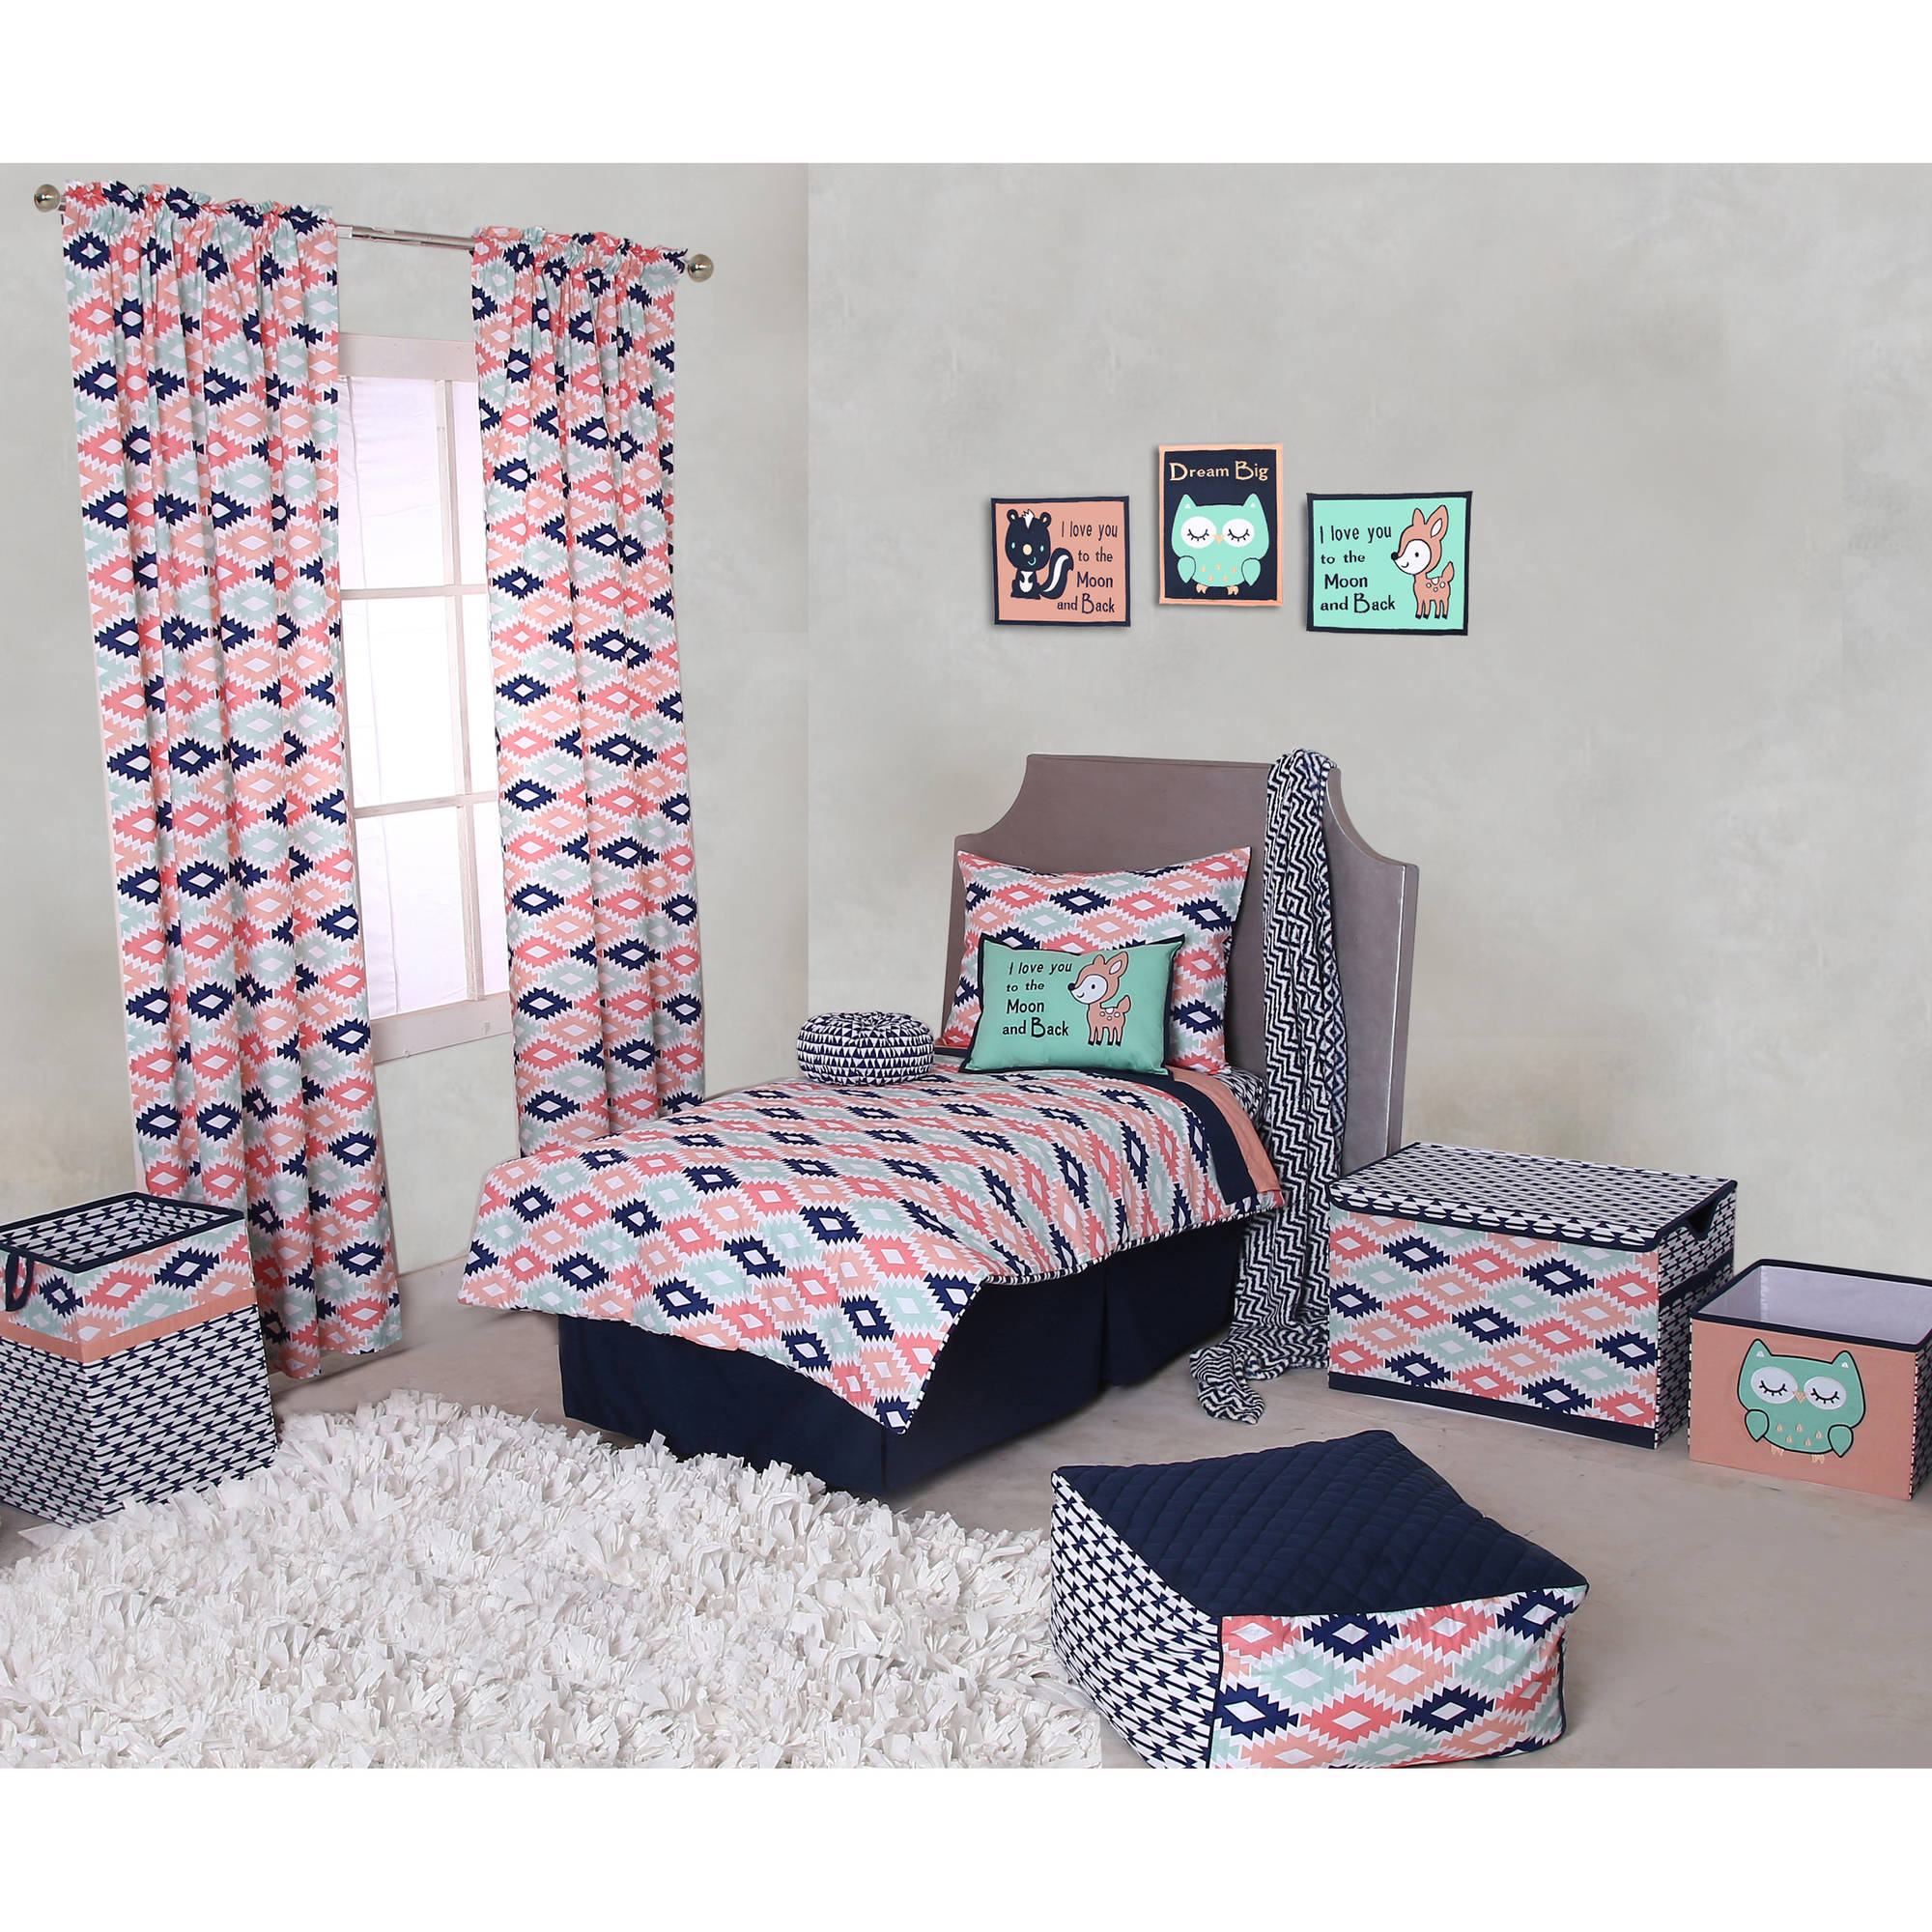 Bacati - Emma Aztec Coral/Mint/Navy 4-Piece Toddler Bedding Set 100% Cotton percale fabrics